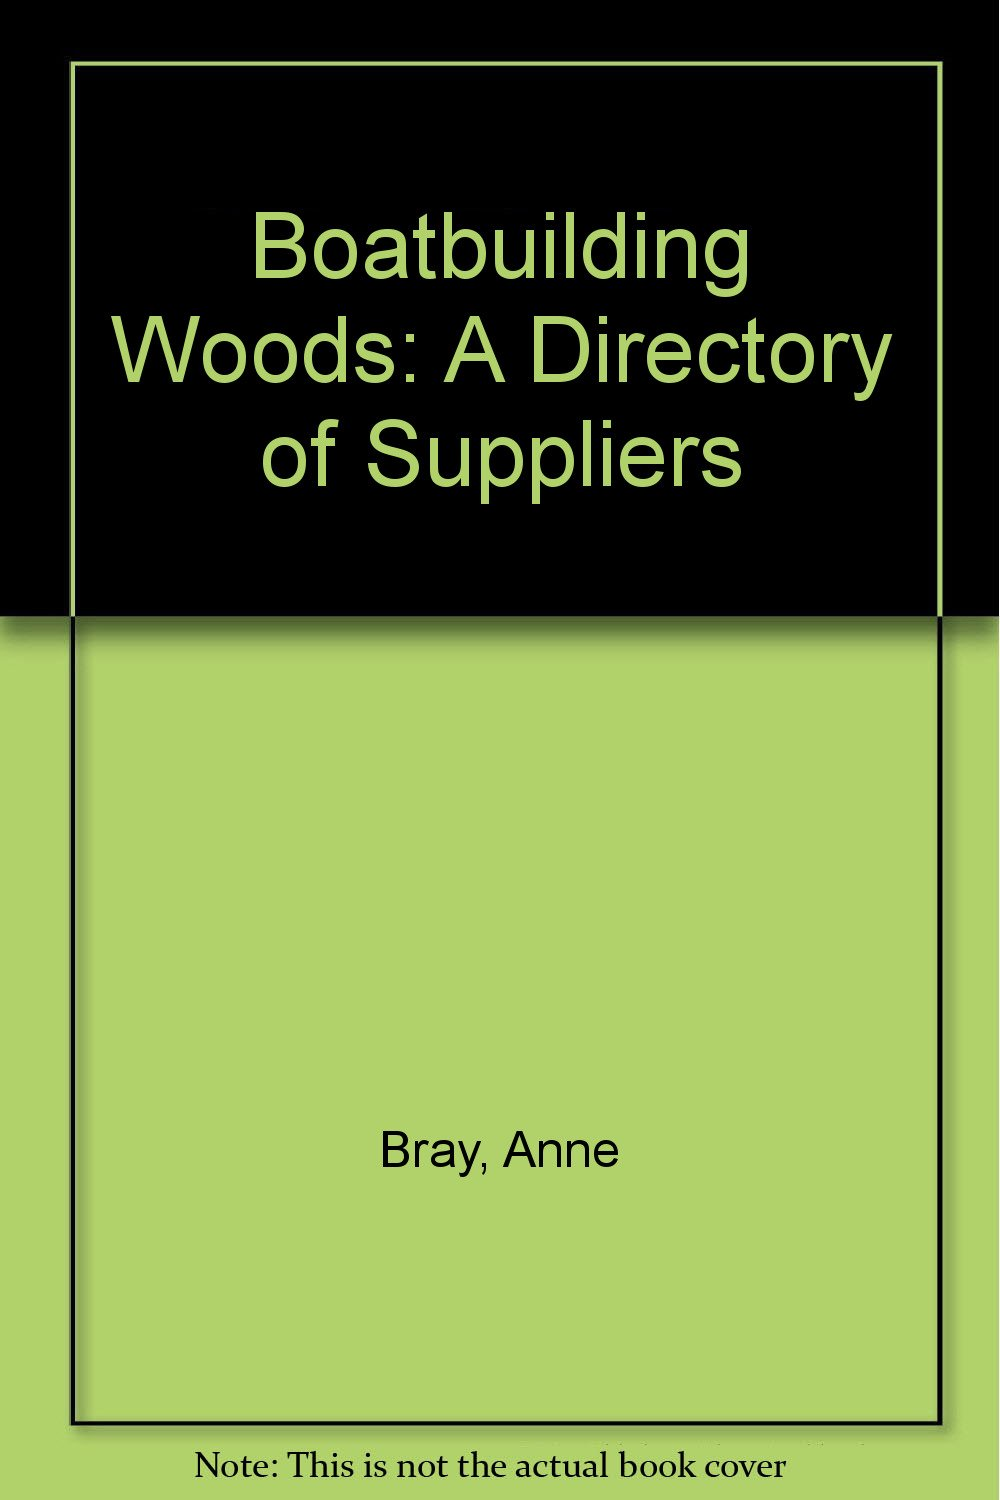 Boatbuilding Woods: A Directory of Suppliers, Bray, Anne